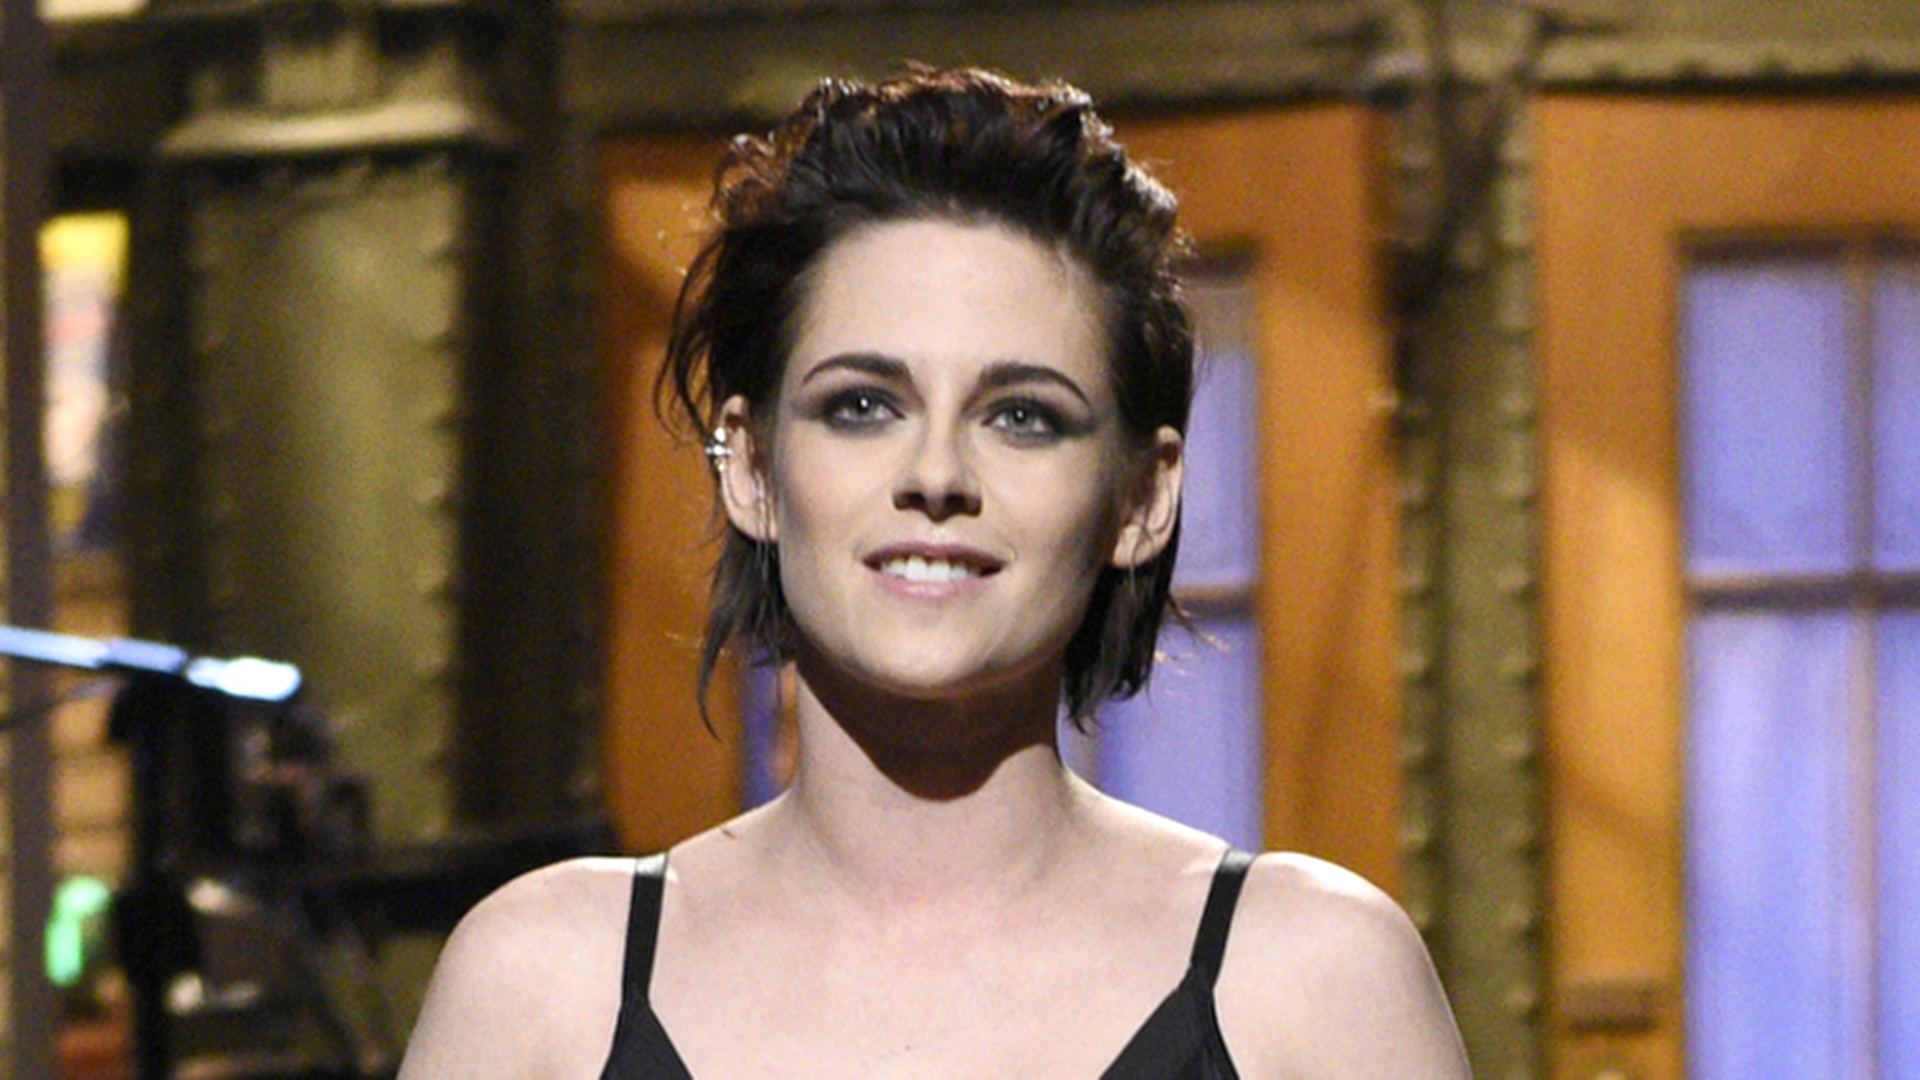 Kristen Stewart Shaved Her Head See Her Dramatic Blond